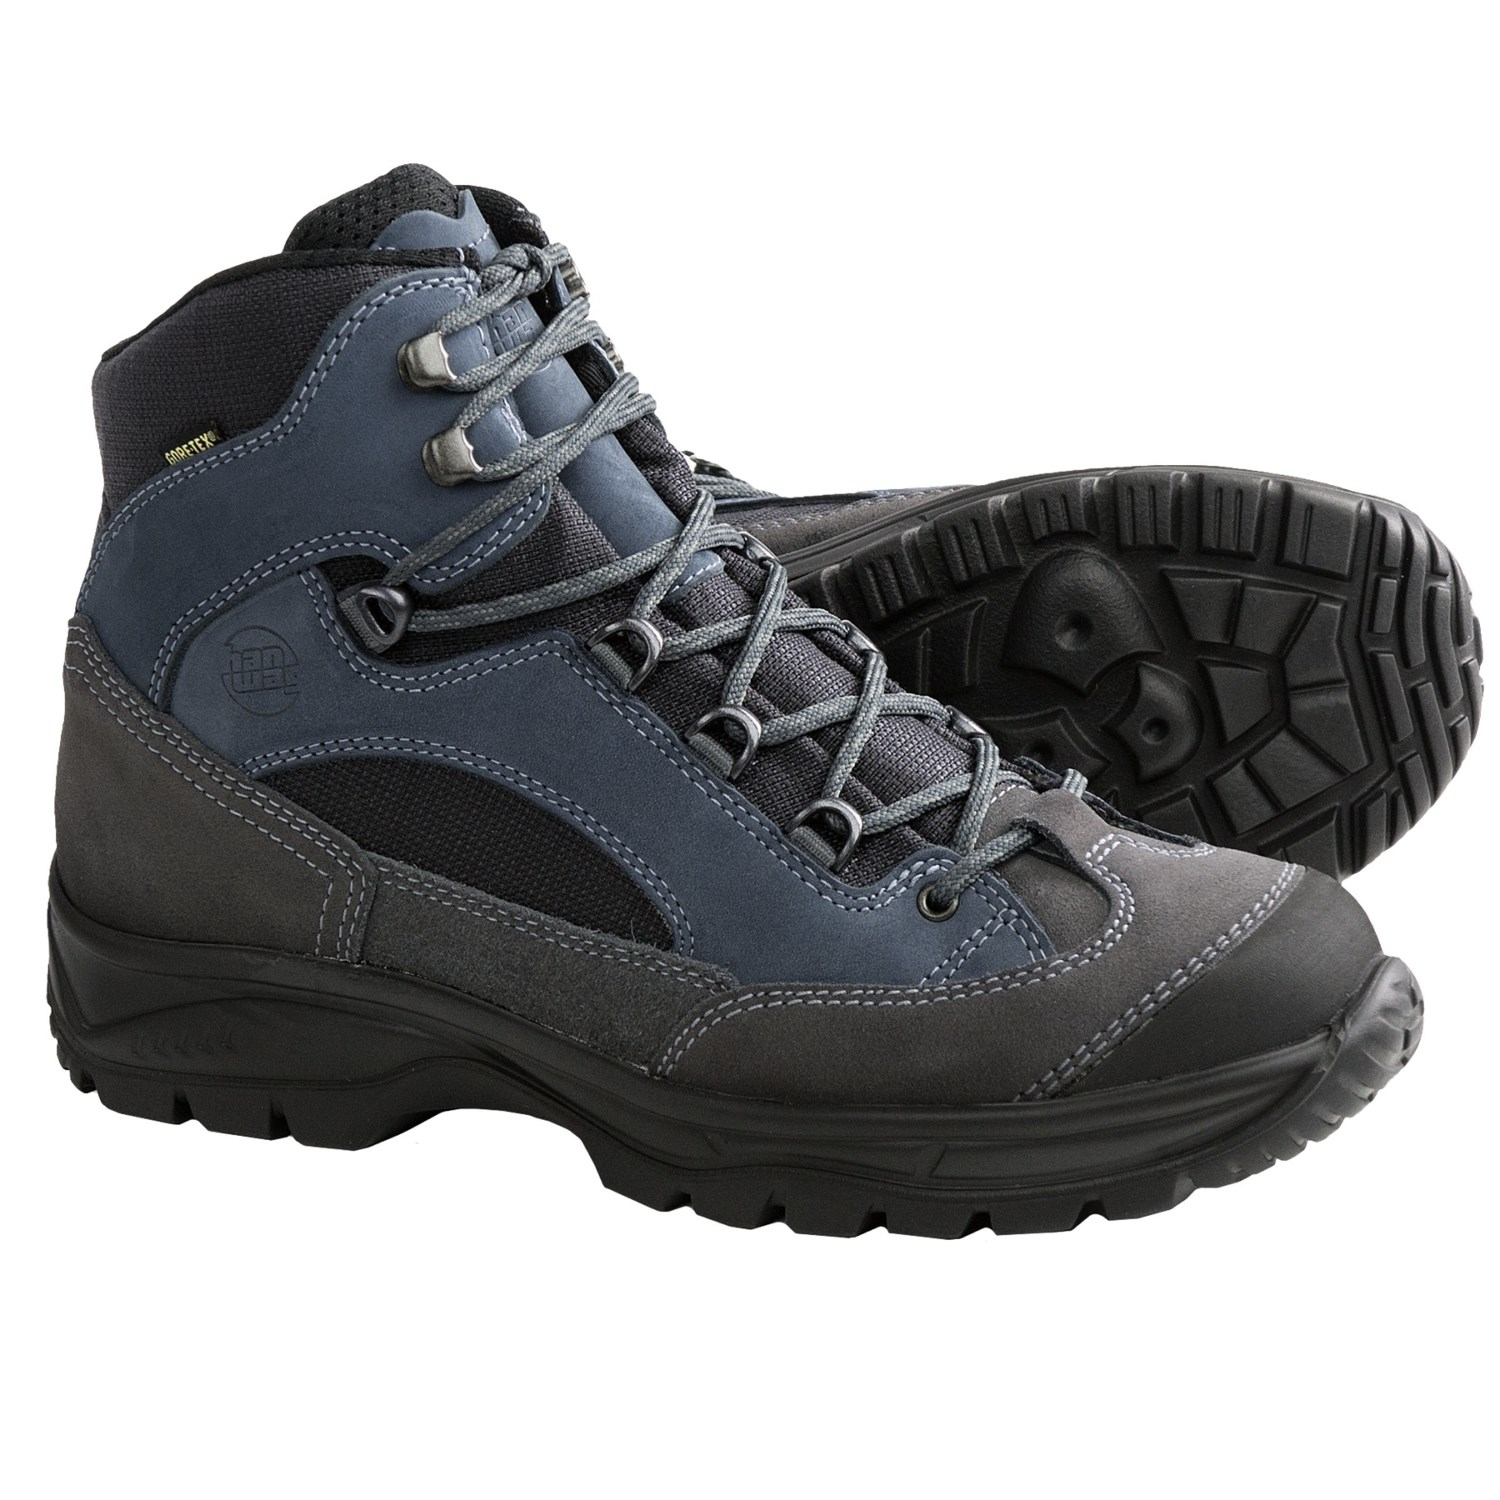 Awesome Brasher Women39s Hillwalker II GORETEX Boots